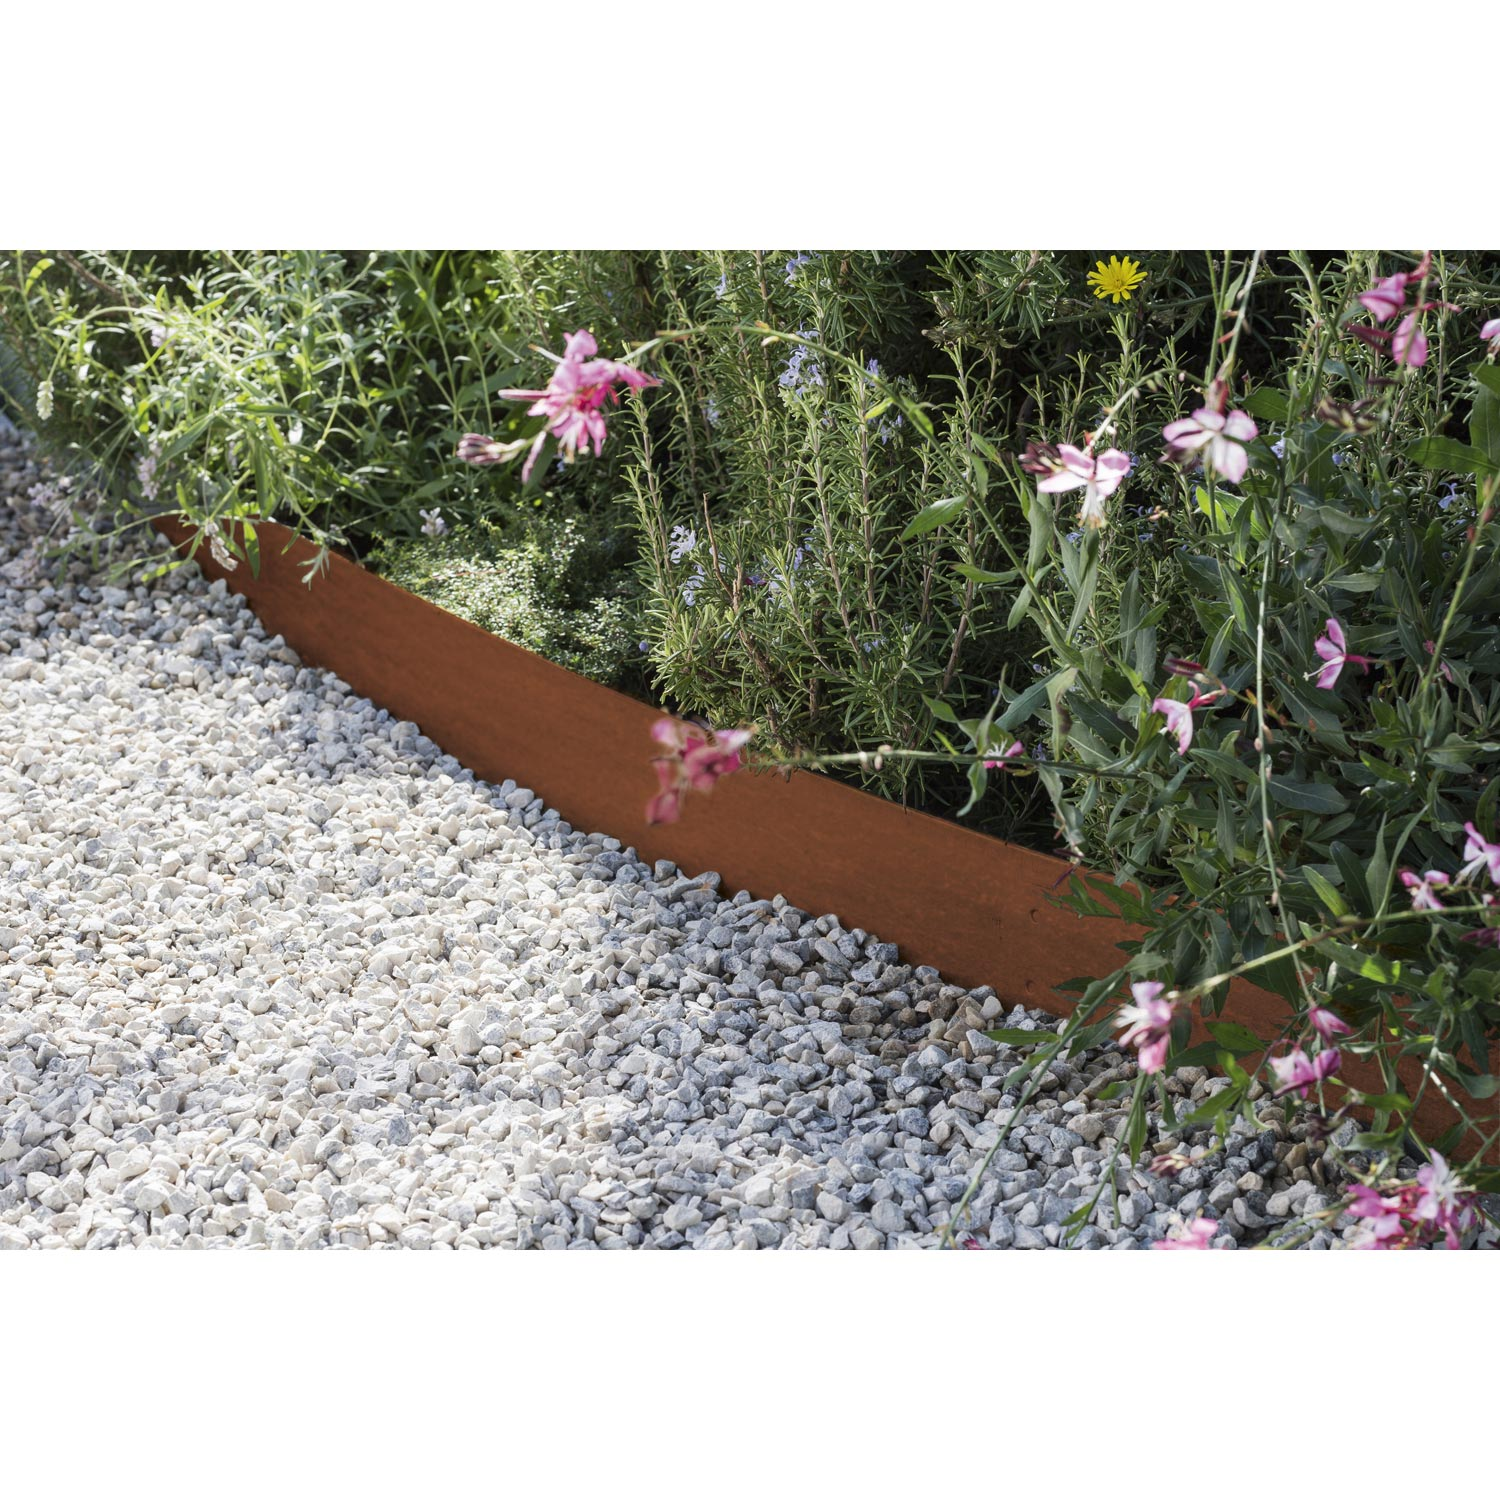 Bordure planter aspect rouille acier galvanis marron x cm leroy merlin - Bordure pour jardin ...